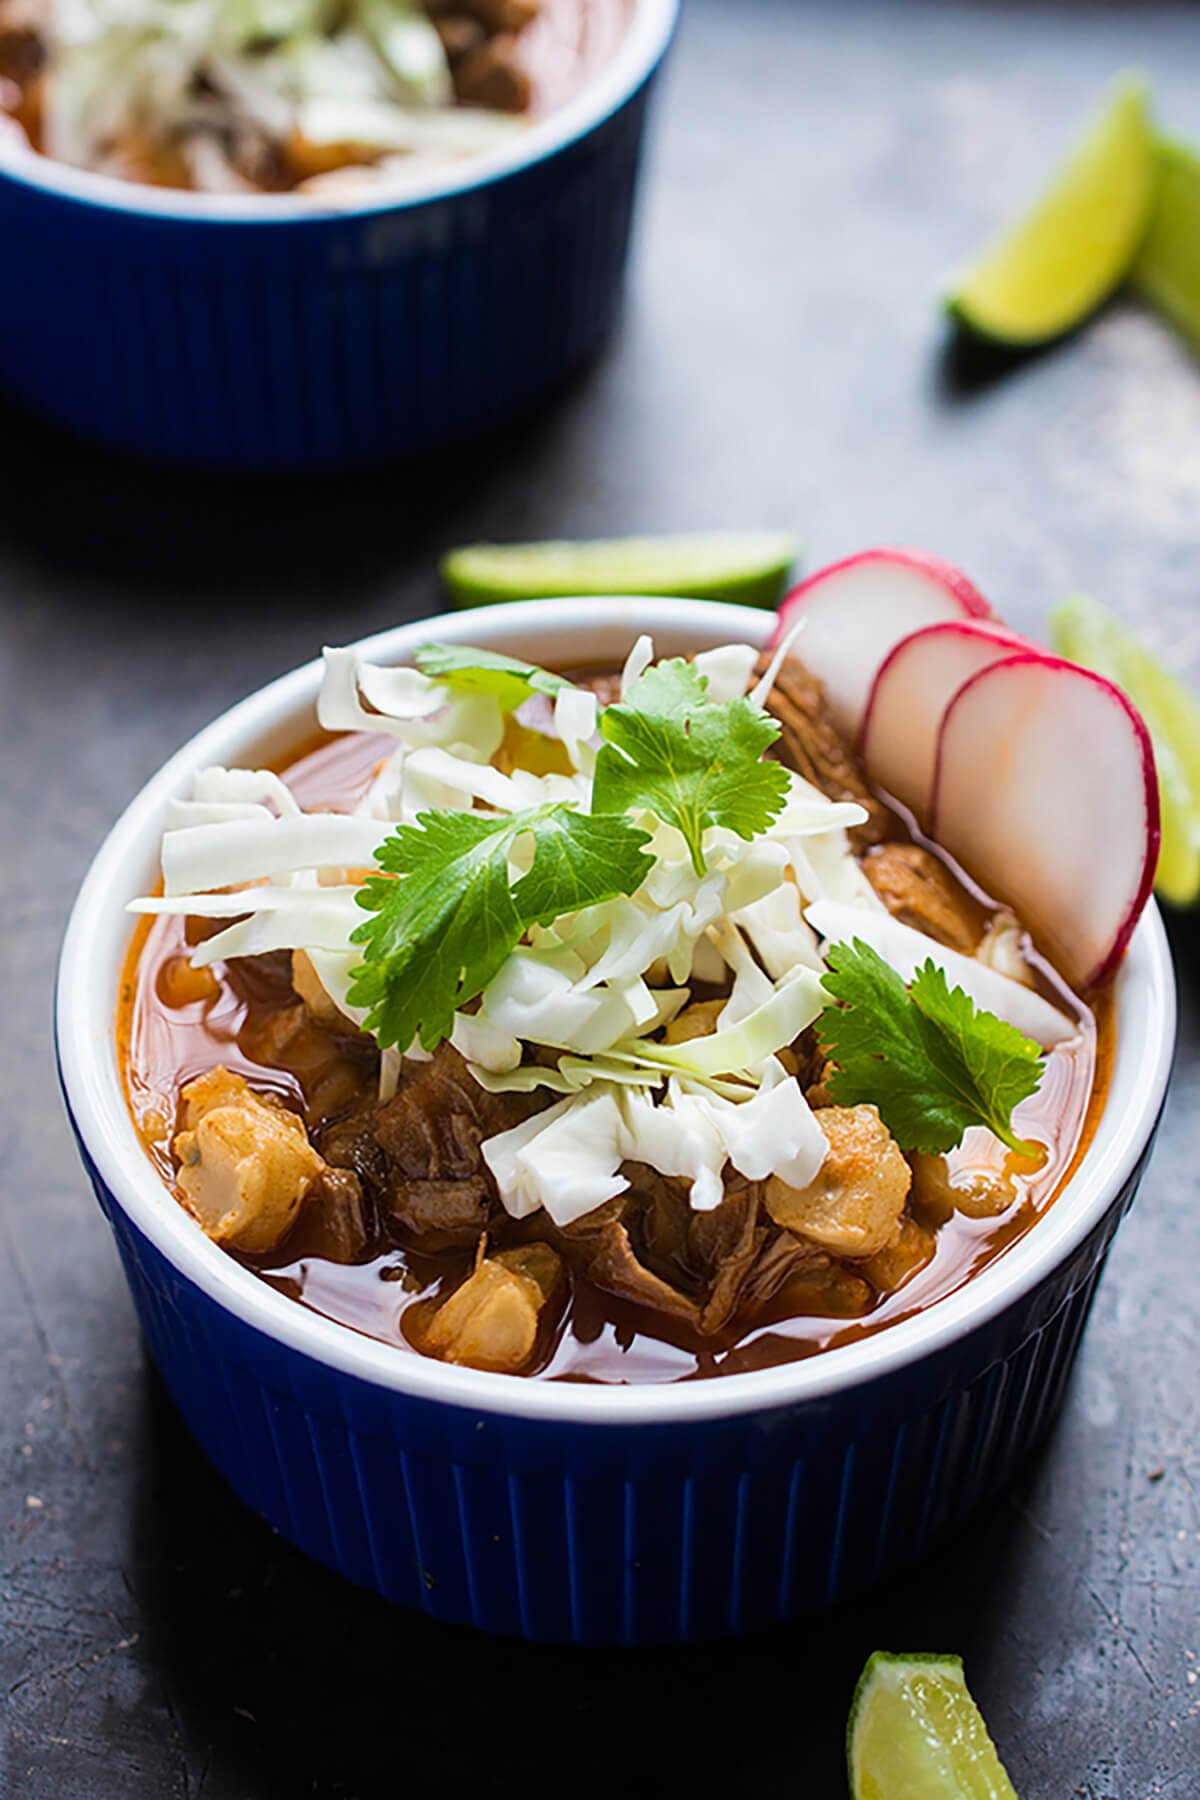 Posole Rojo - Pork and Hominy Stew in a bowl